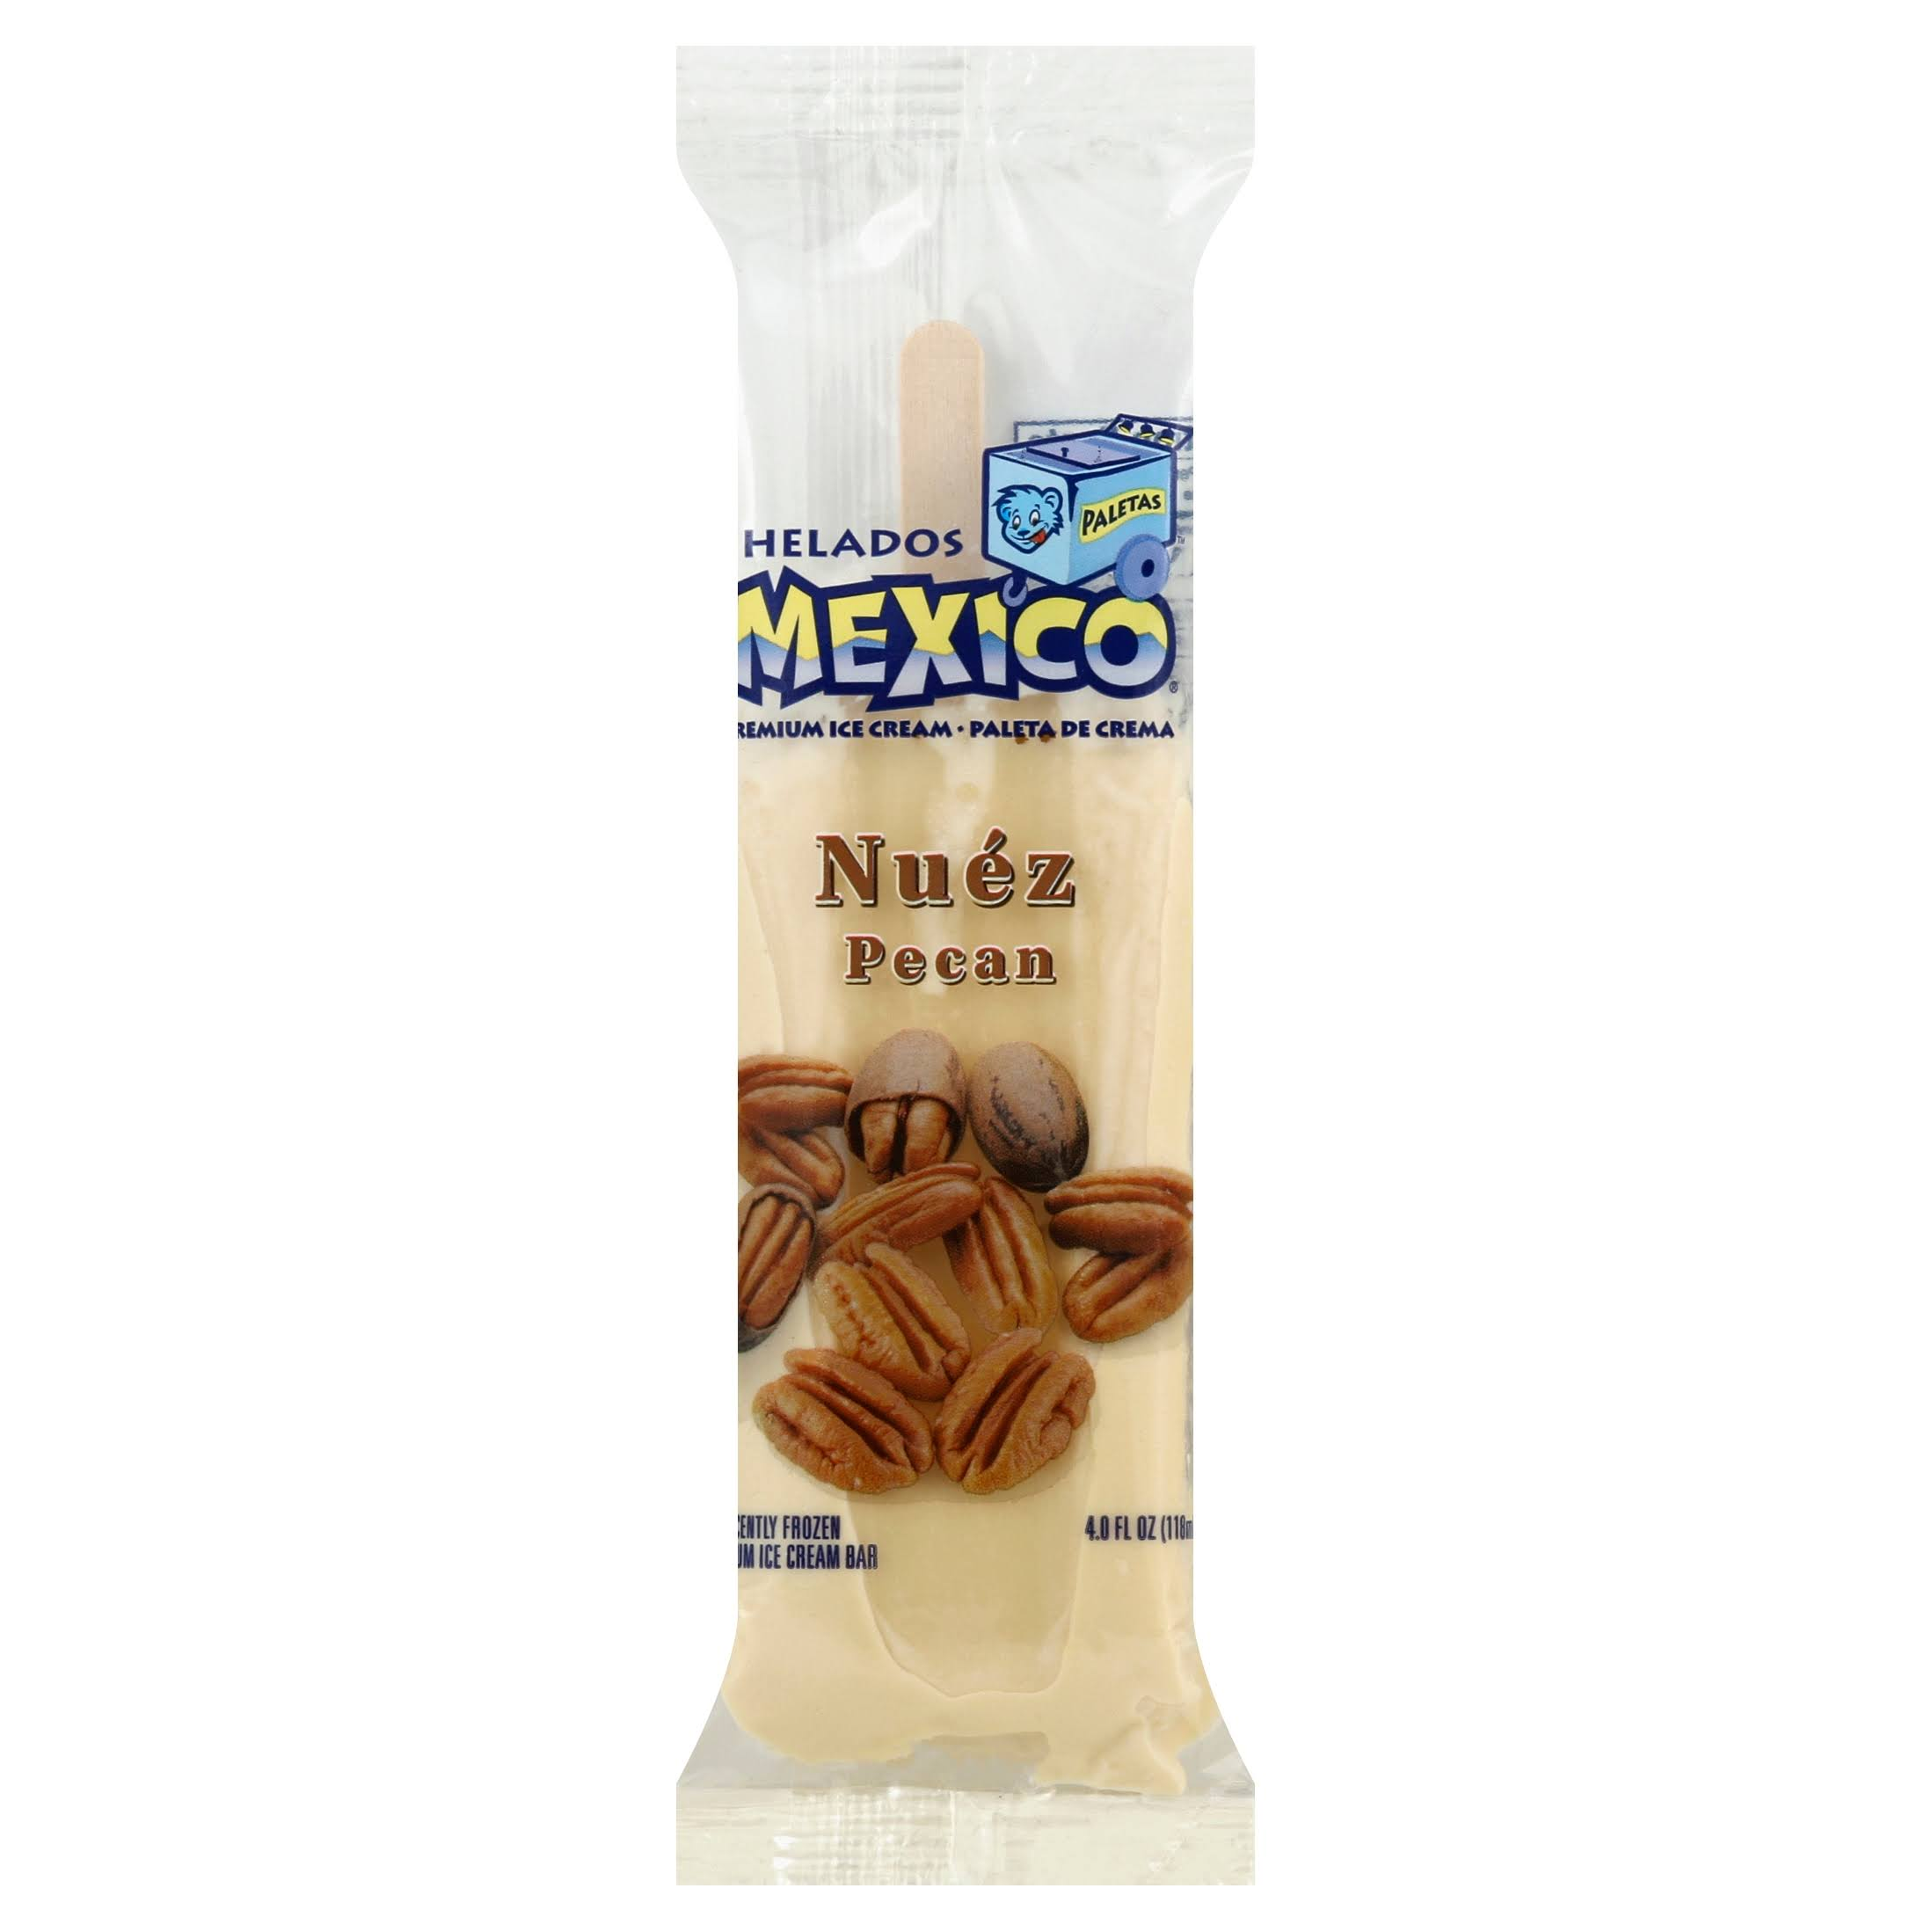 Helados Mexico Pecan Premium Ice Cream Bar - 4oz